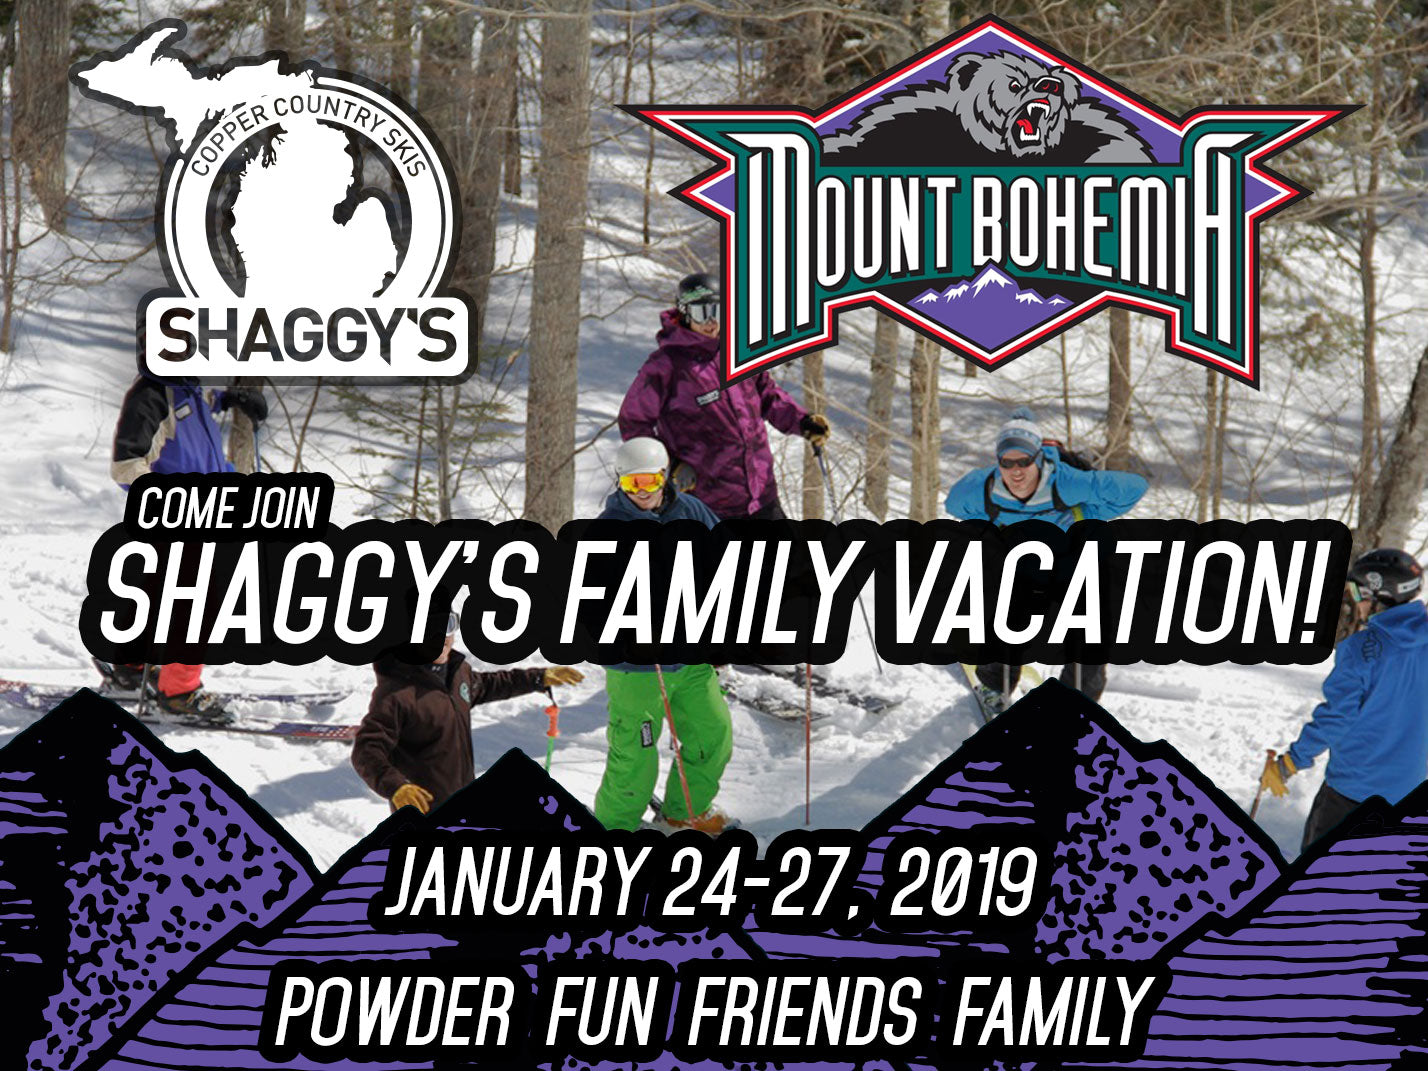 Shaggy's Family Vacation at Mount Bohemia 2019 - You're Invited